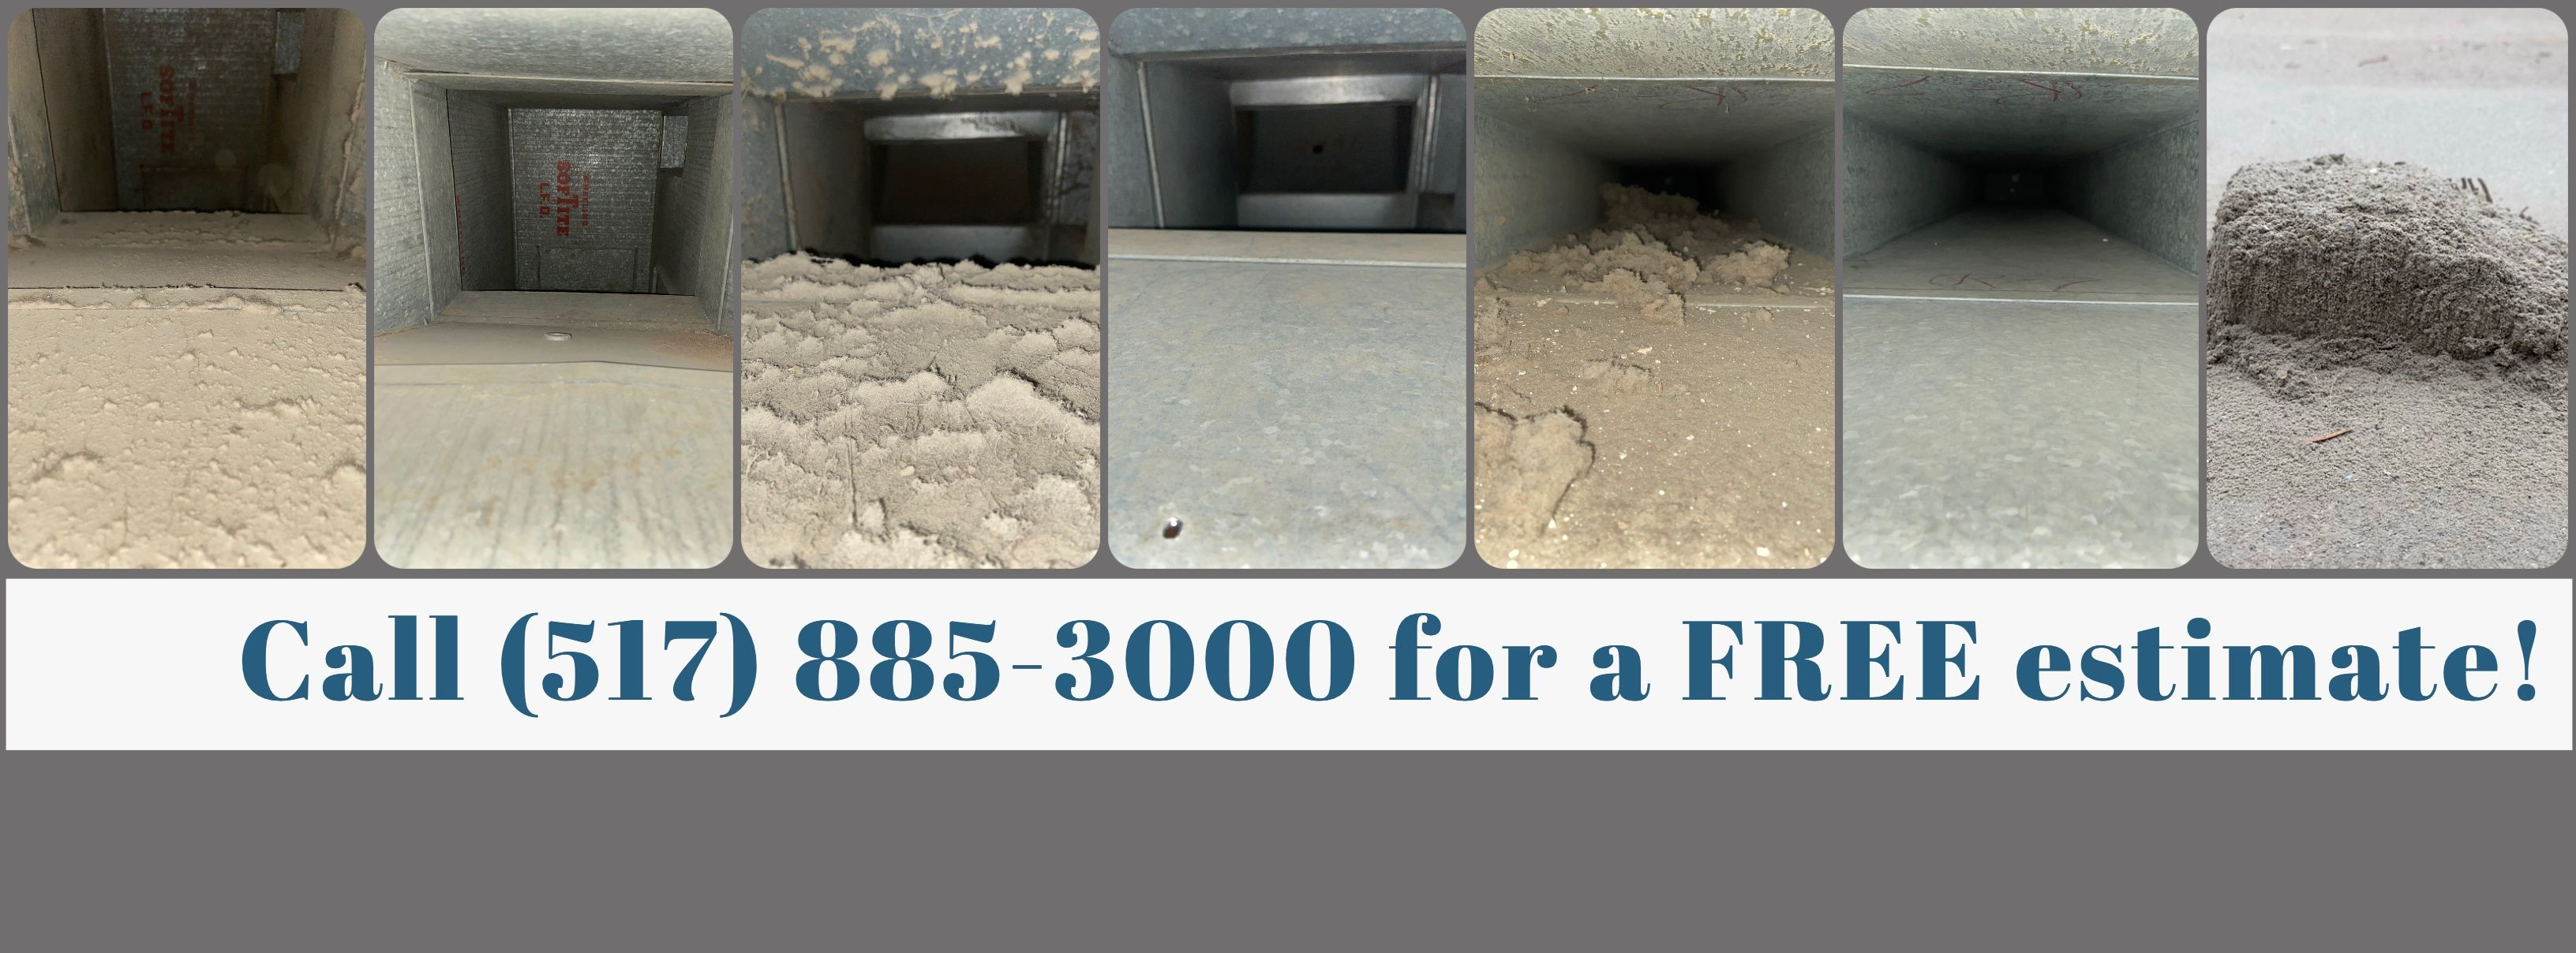 Professional Air Duct Cleaning In 2020 Air Duct Clean Air Ducts Duct Cleaning